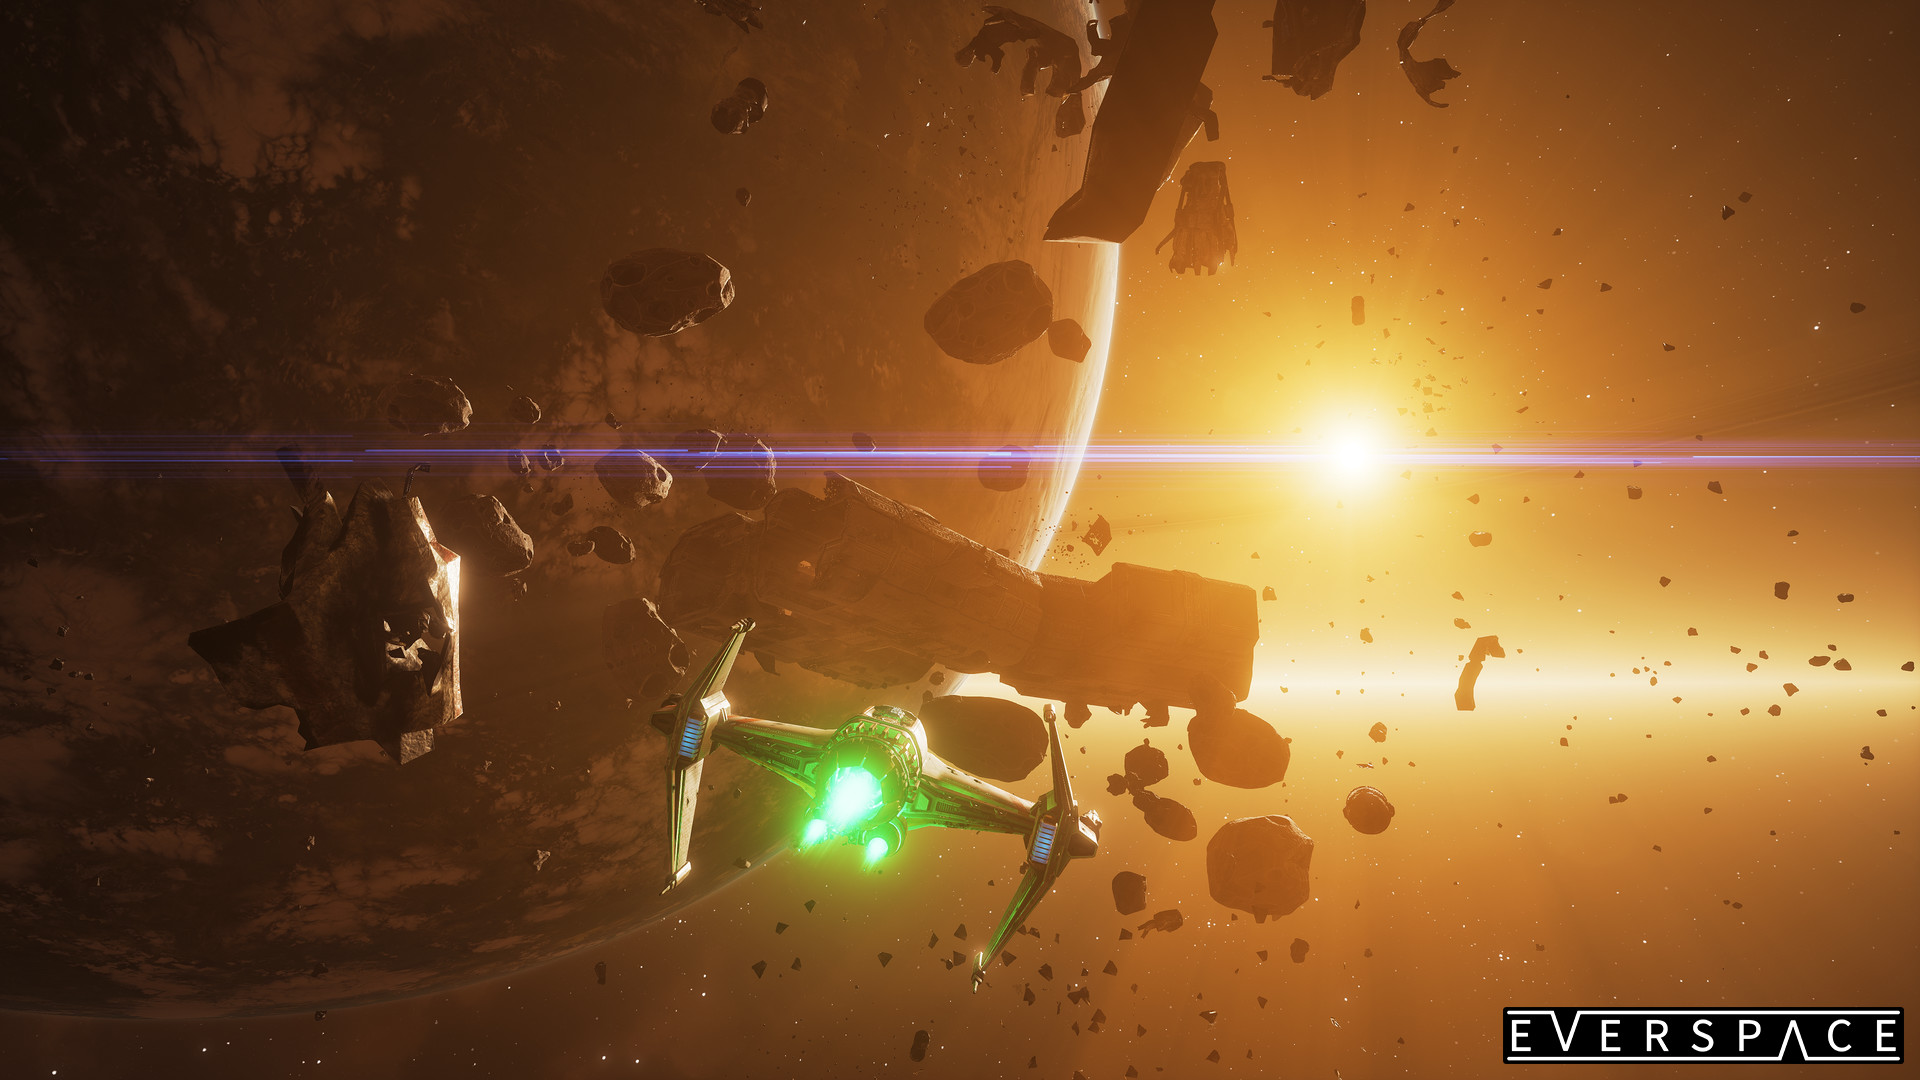 EVERSPACE screenshot